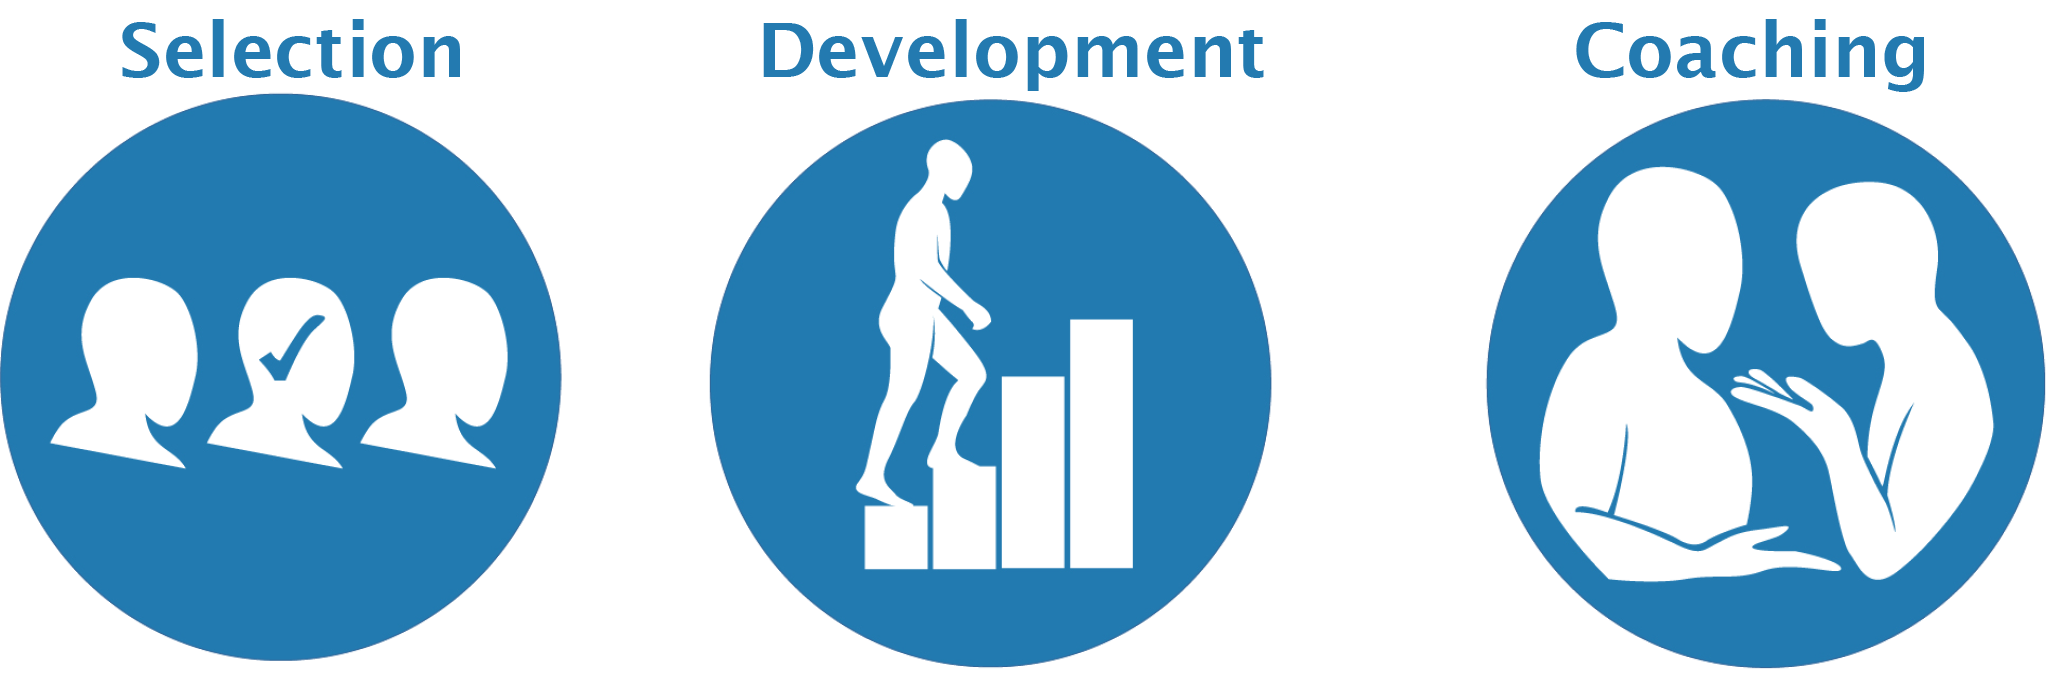 Credo icons showing selection, development and coaching